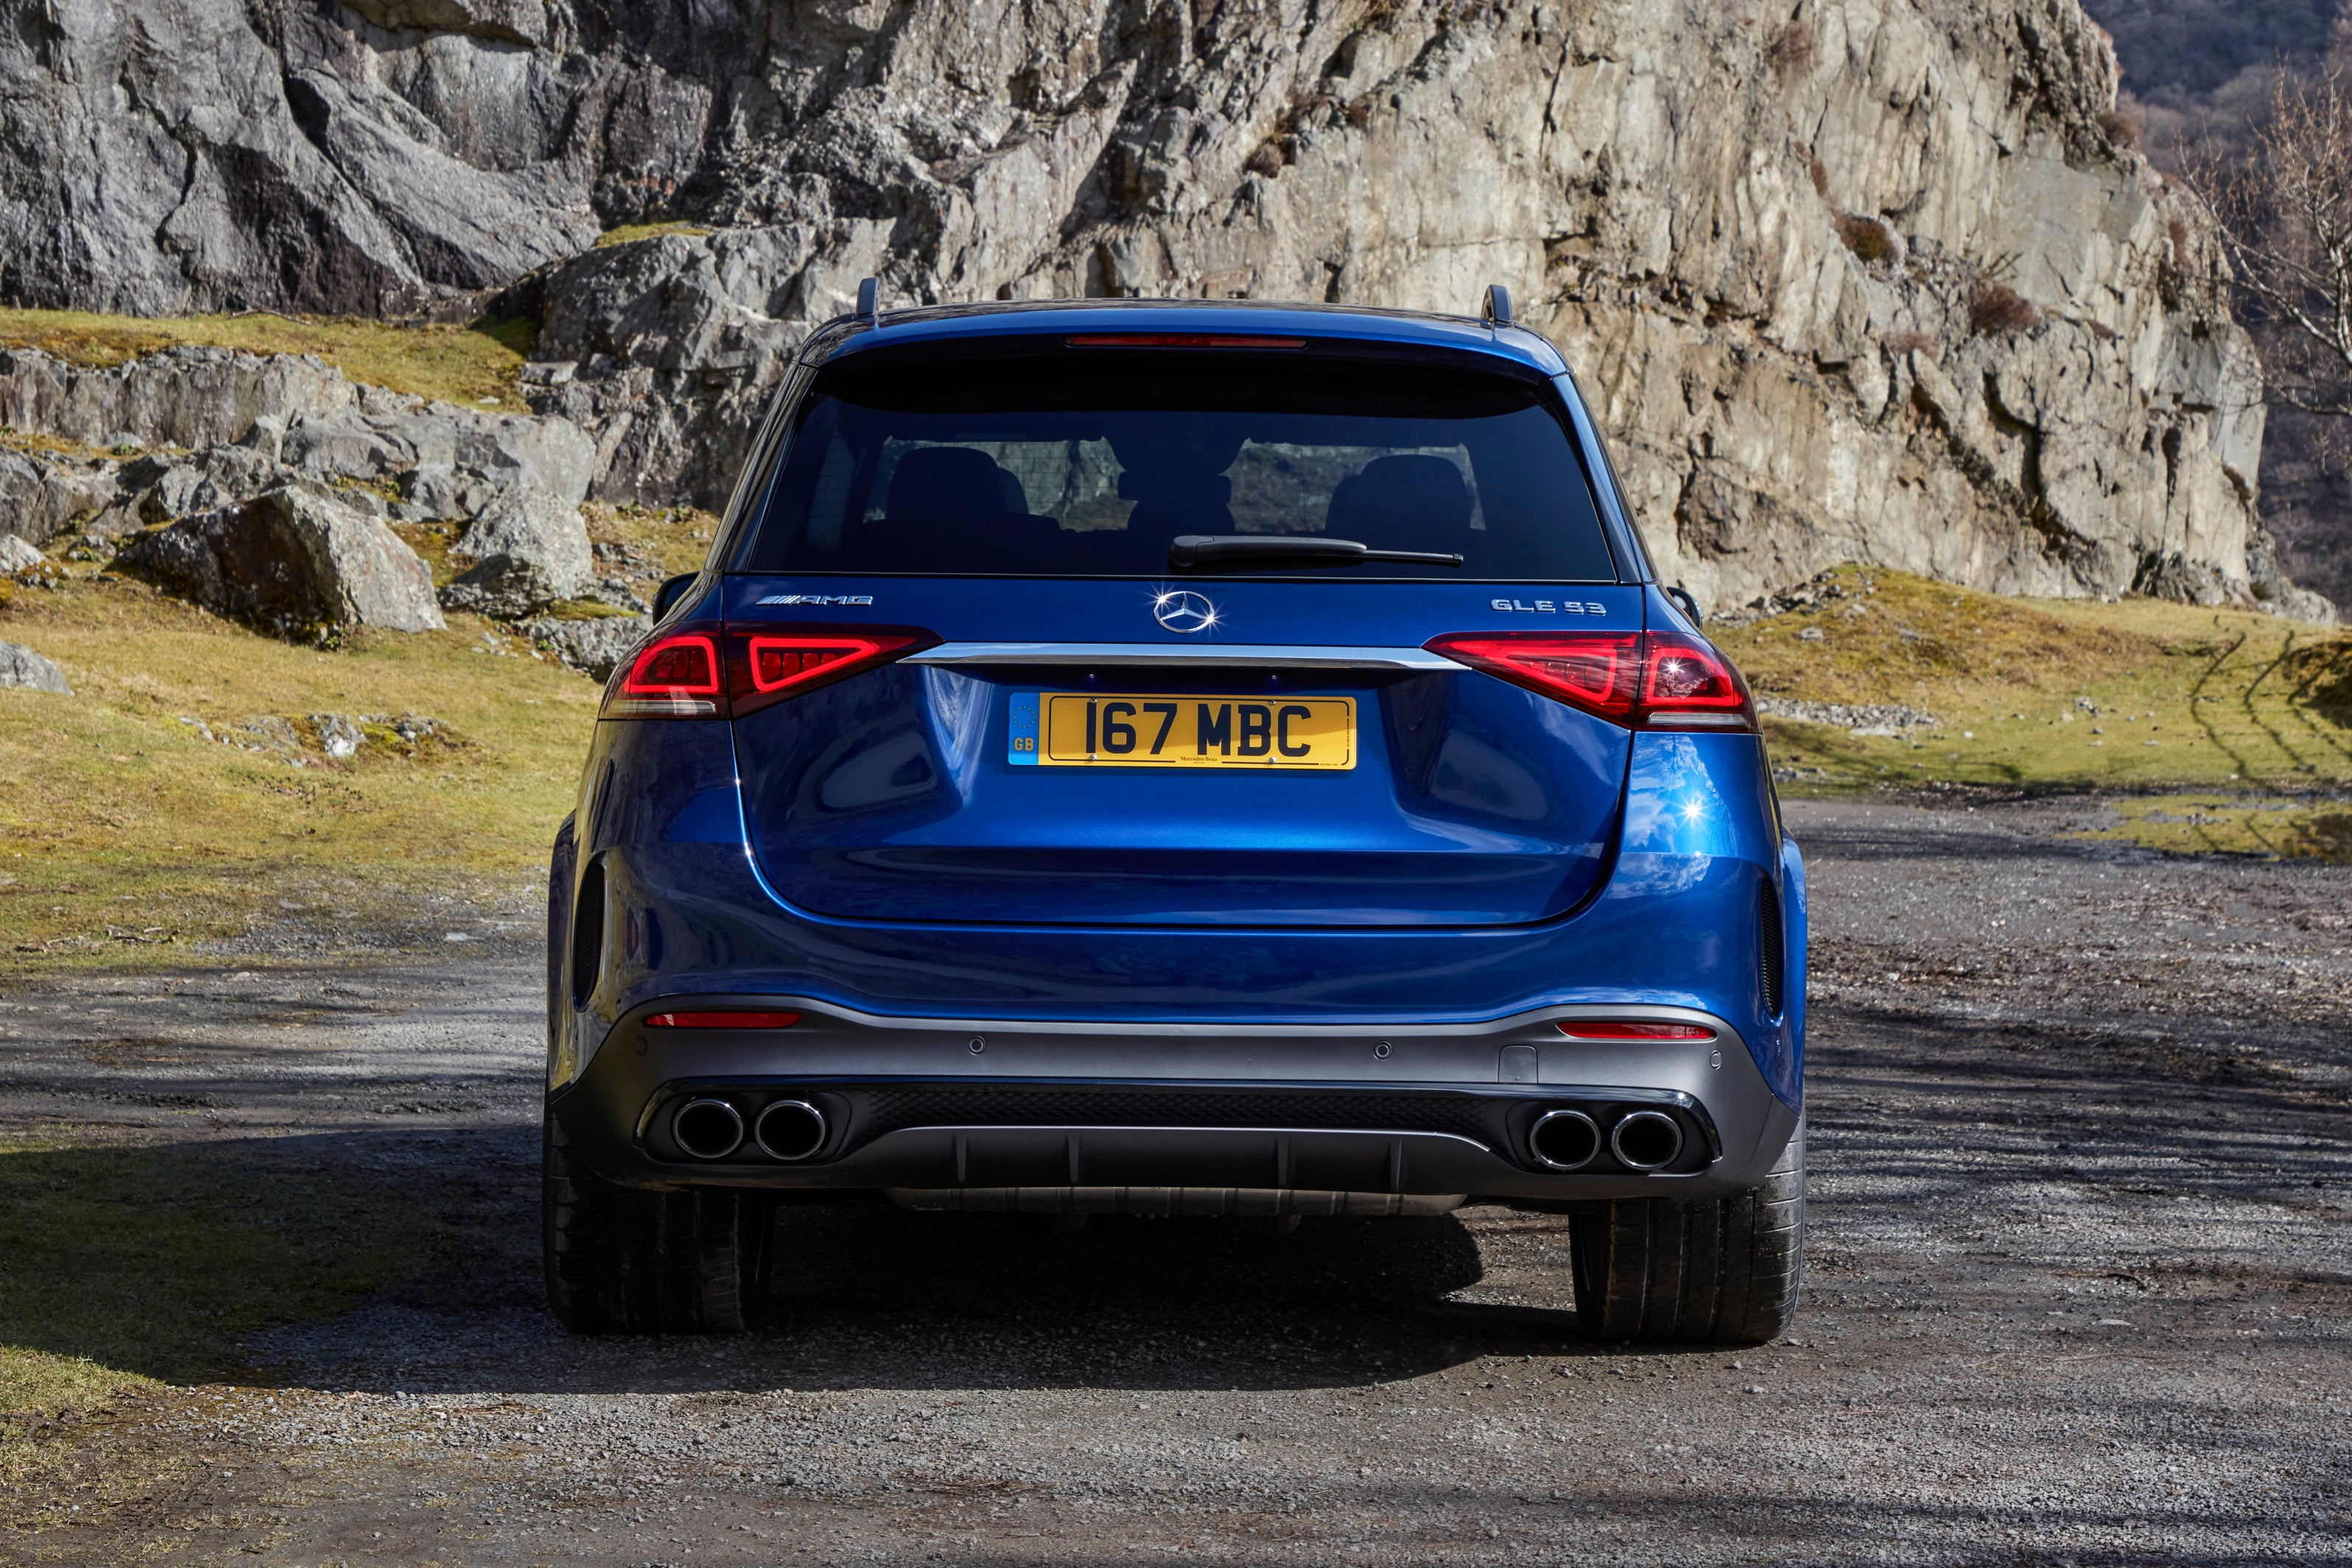 Mercedes GLE rear exterior